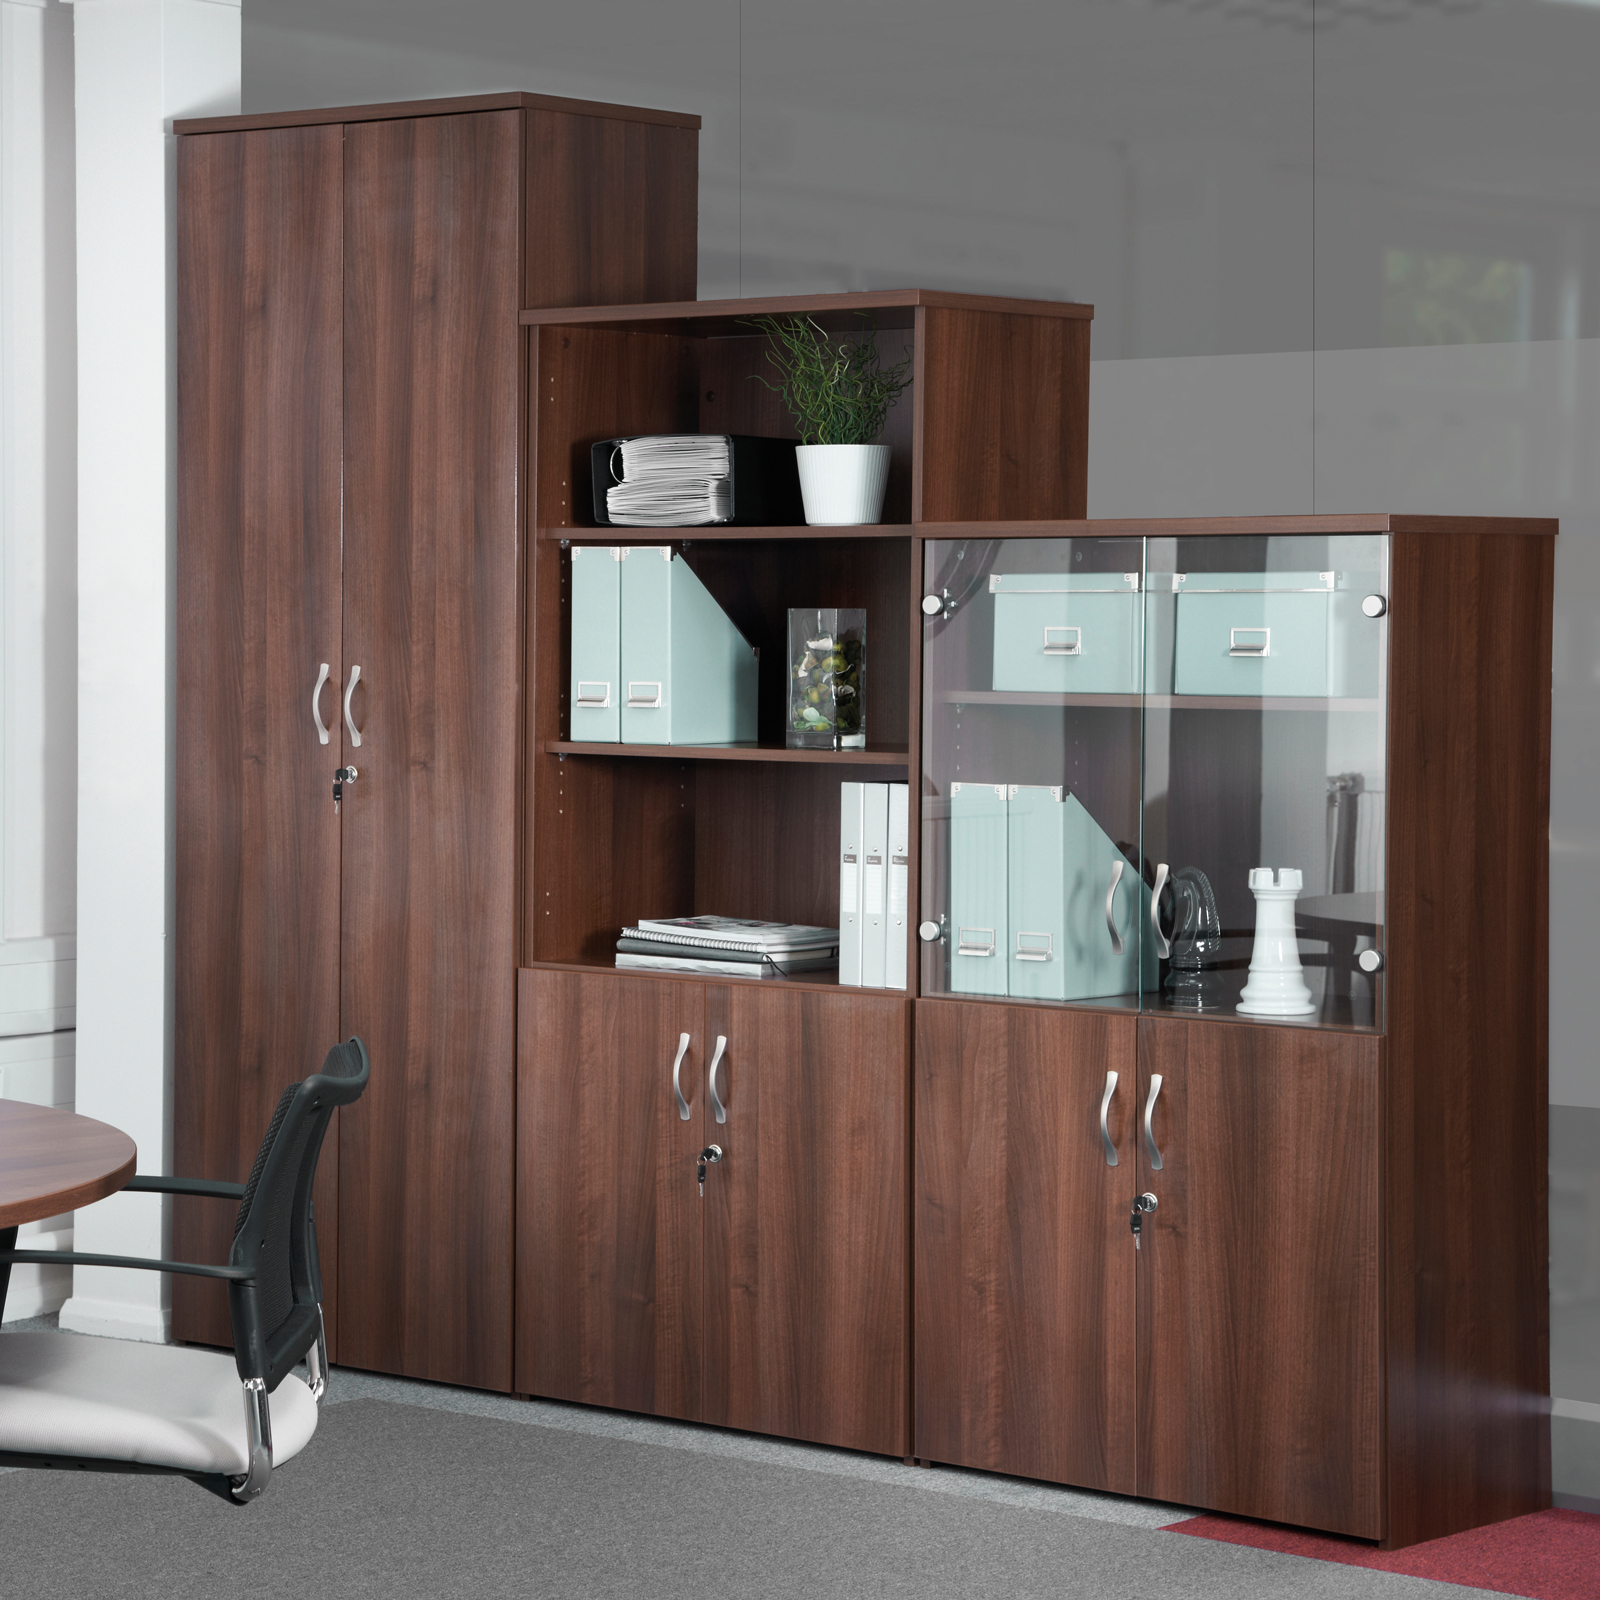 Cupboards Special Offers